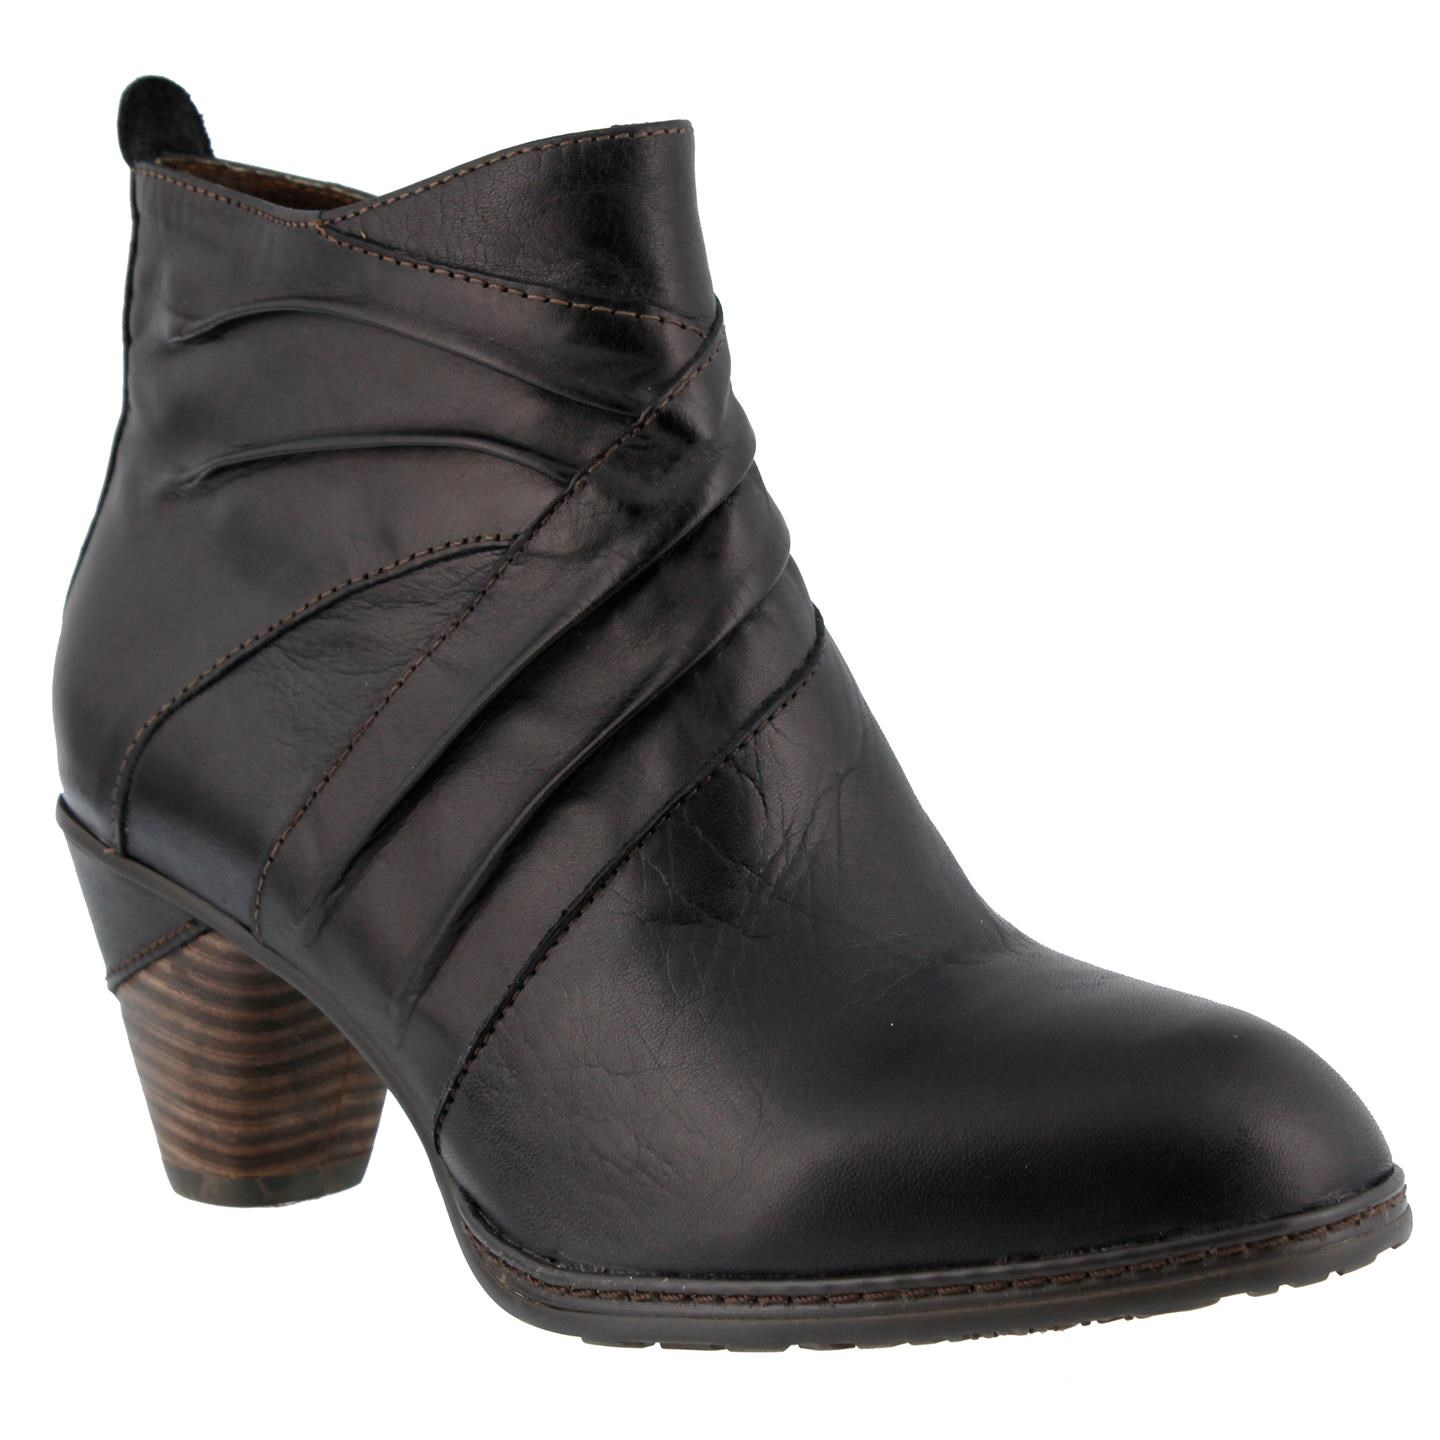 L'Artiste Jazlyn By Spring Step Black Leather Boots 40 EU   9 US Women by Spring Step